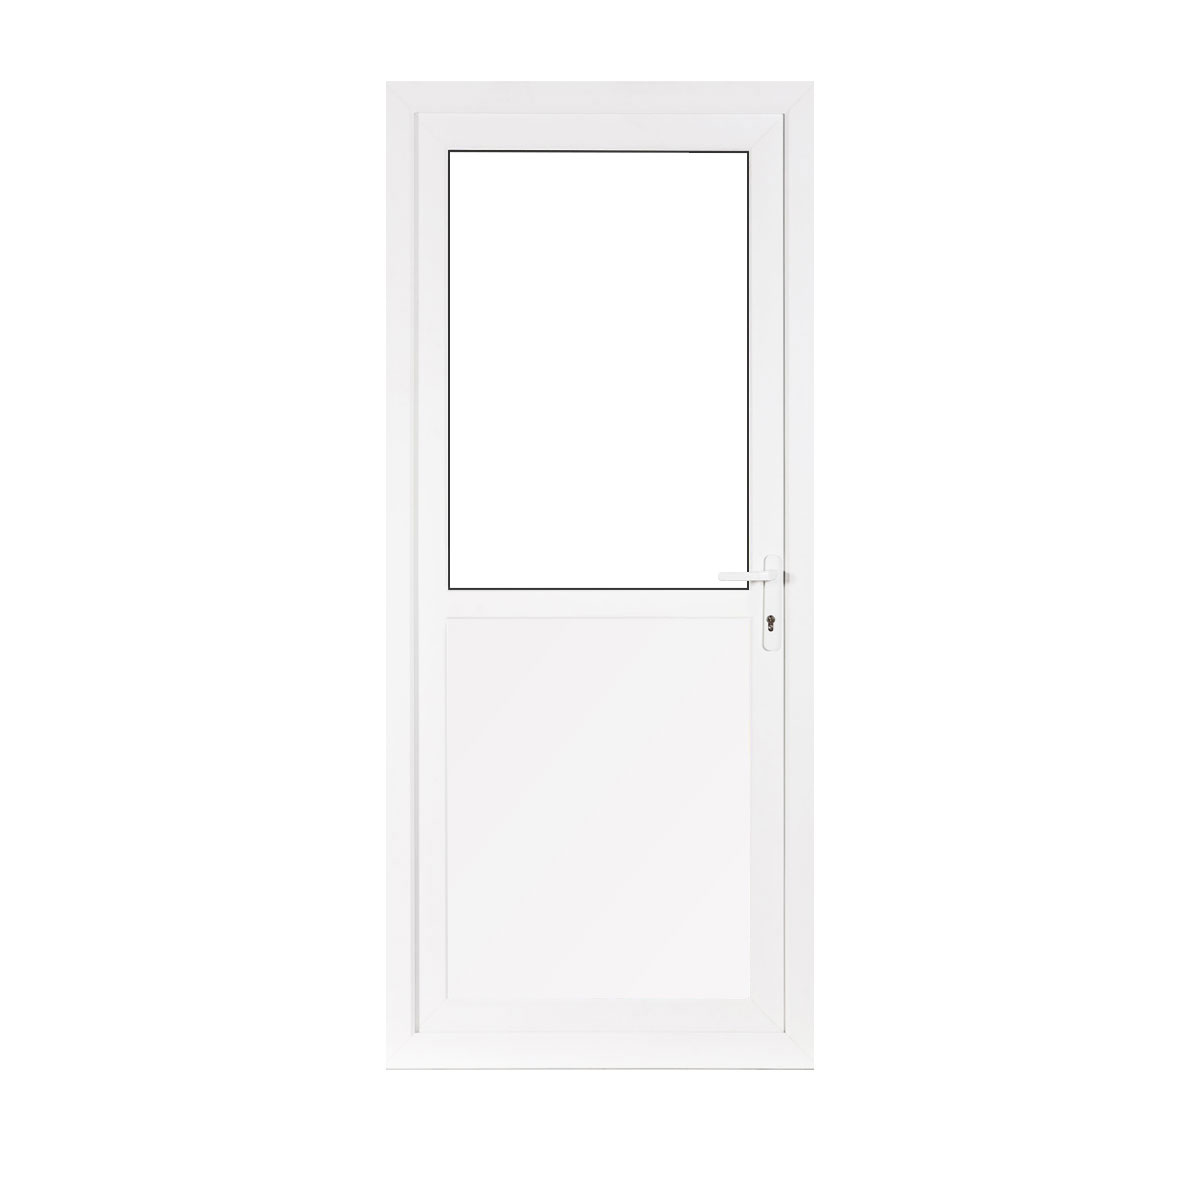 Large half glass upvc back door flying doors large half glass upvc back door planetlyrics Images